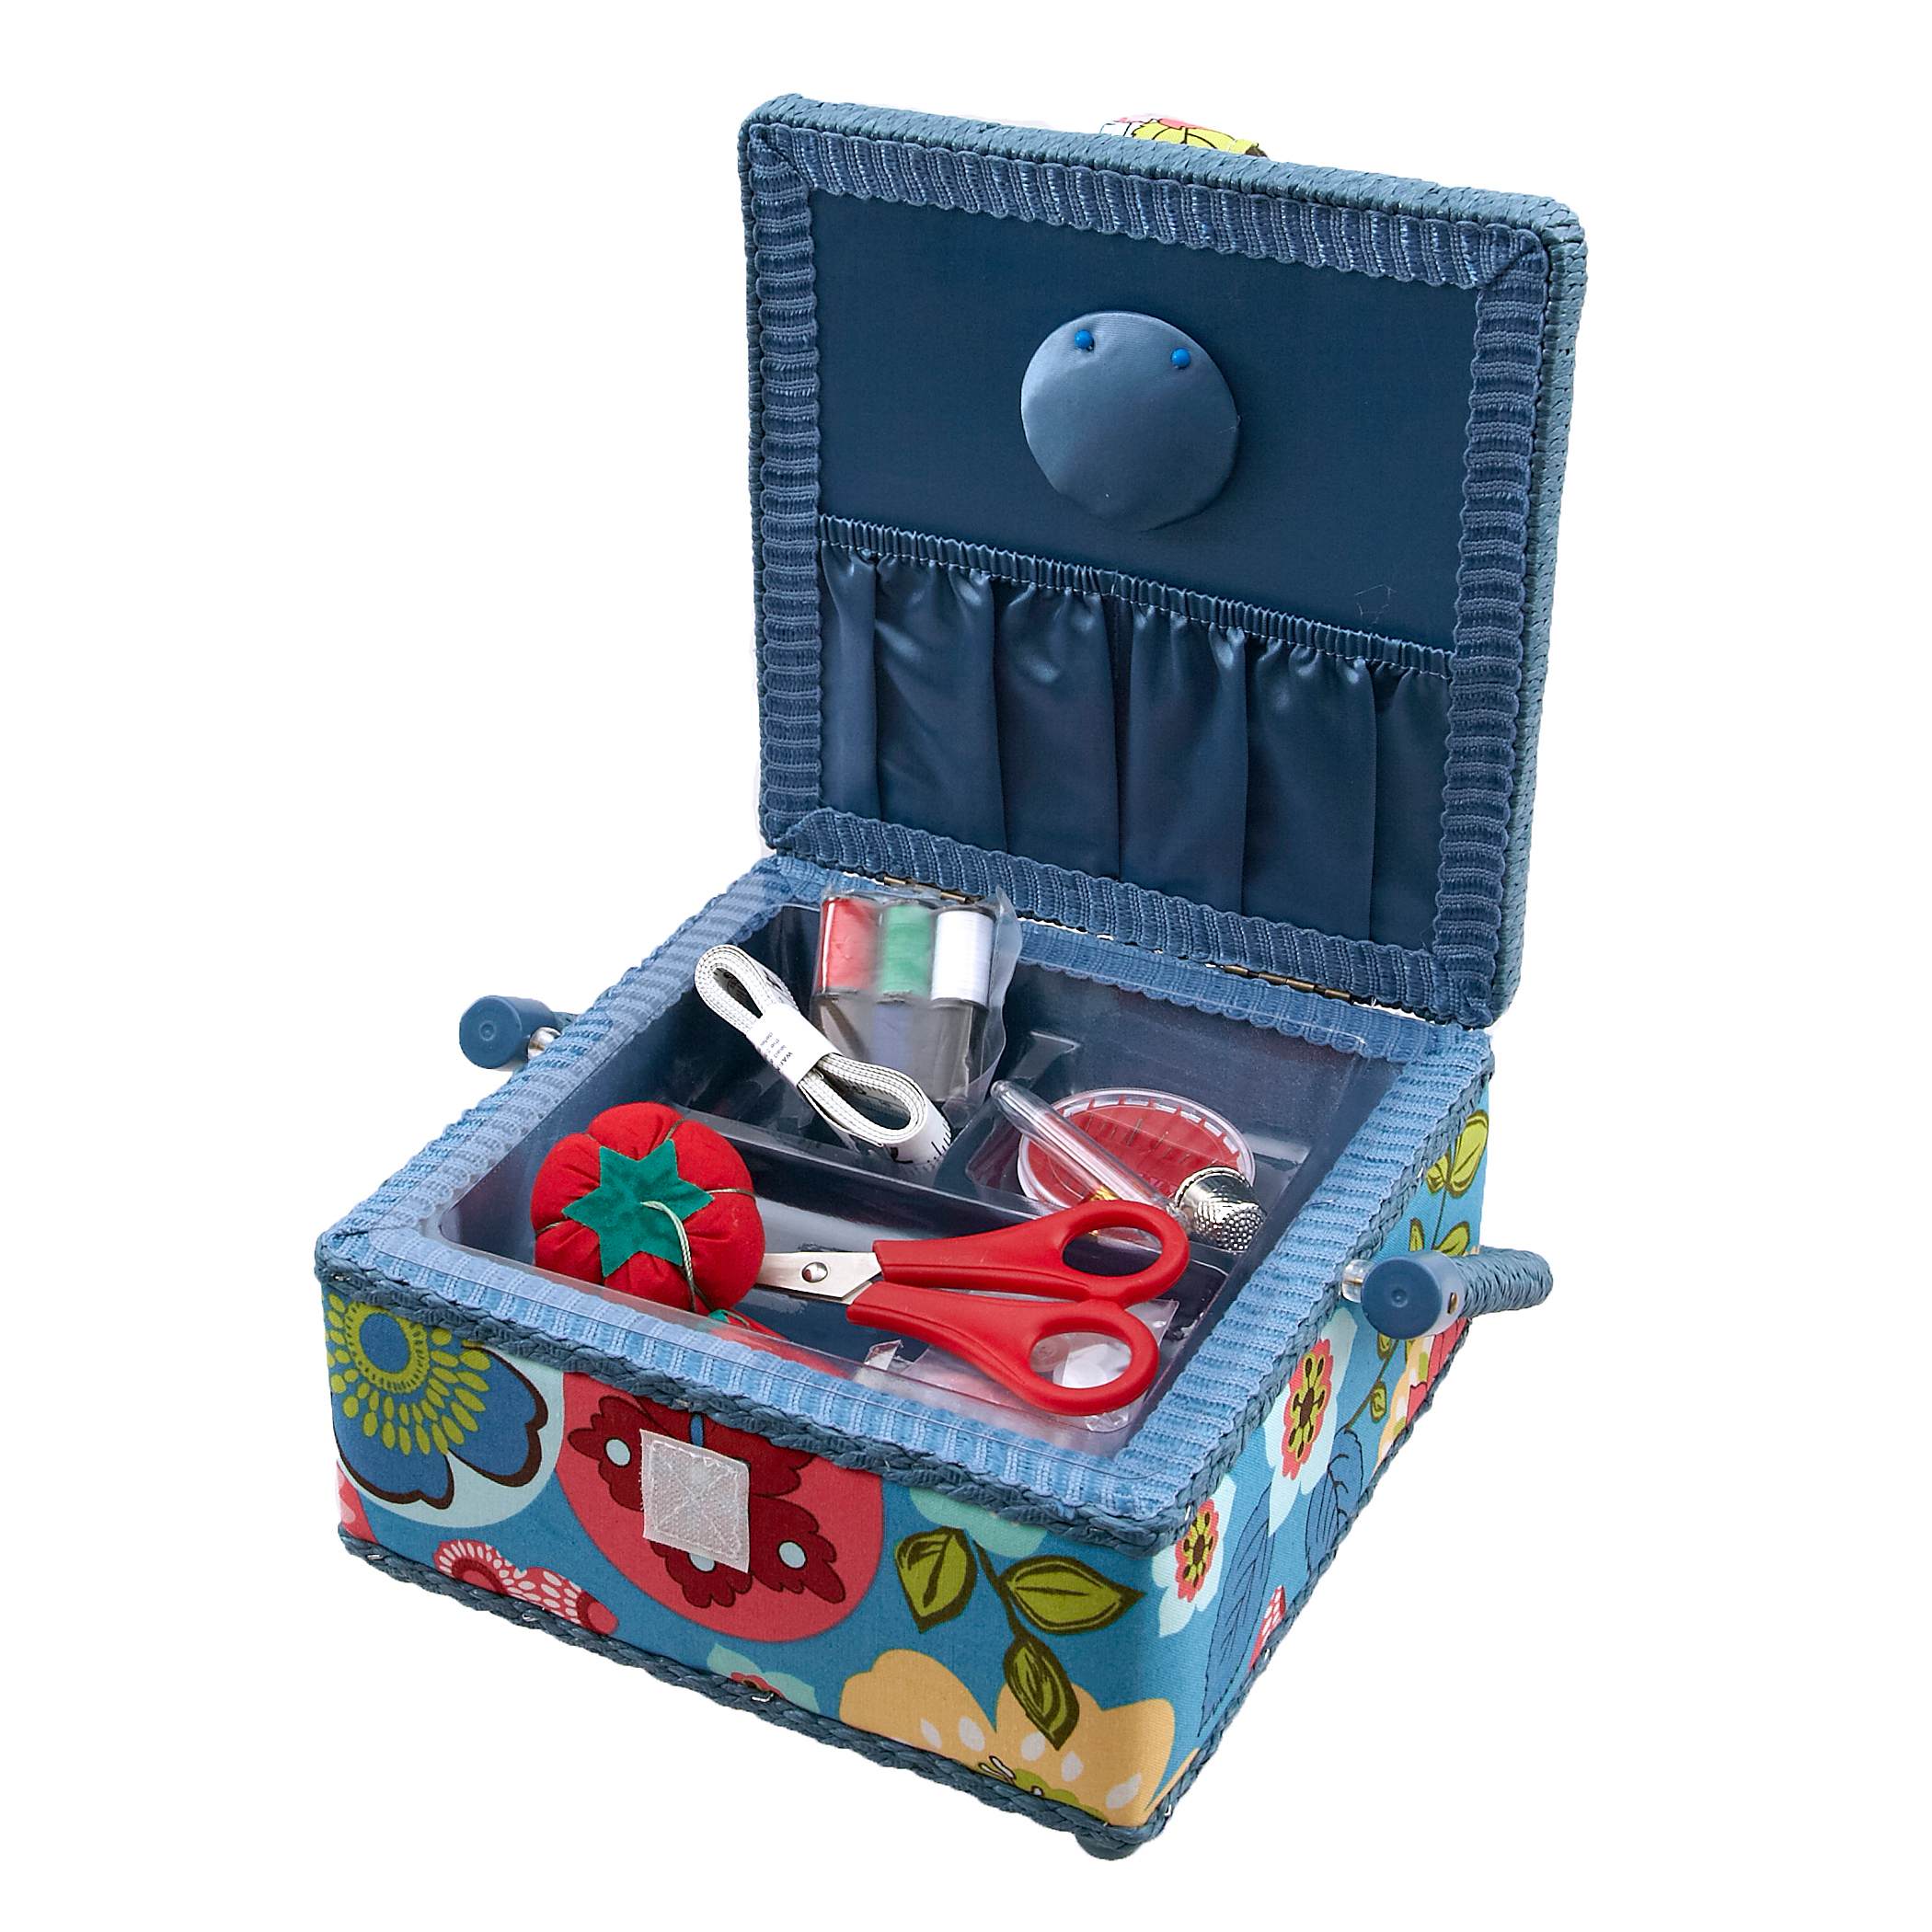 Sewing Basket & Basic Notions Kit Light Blue